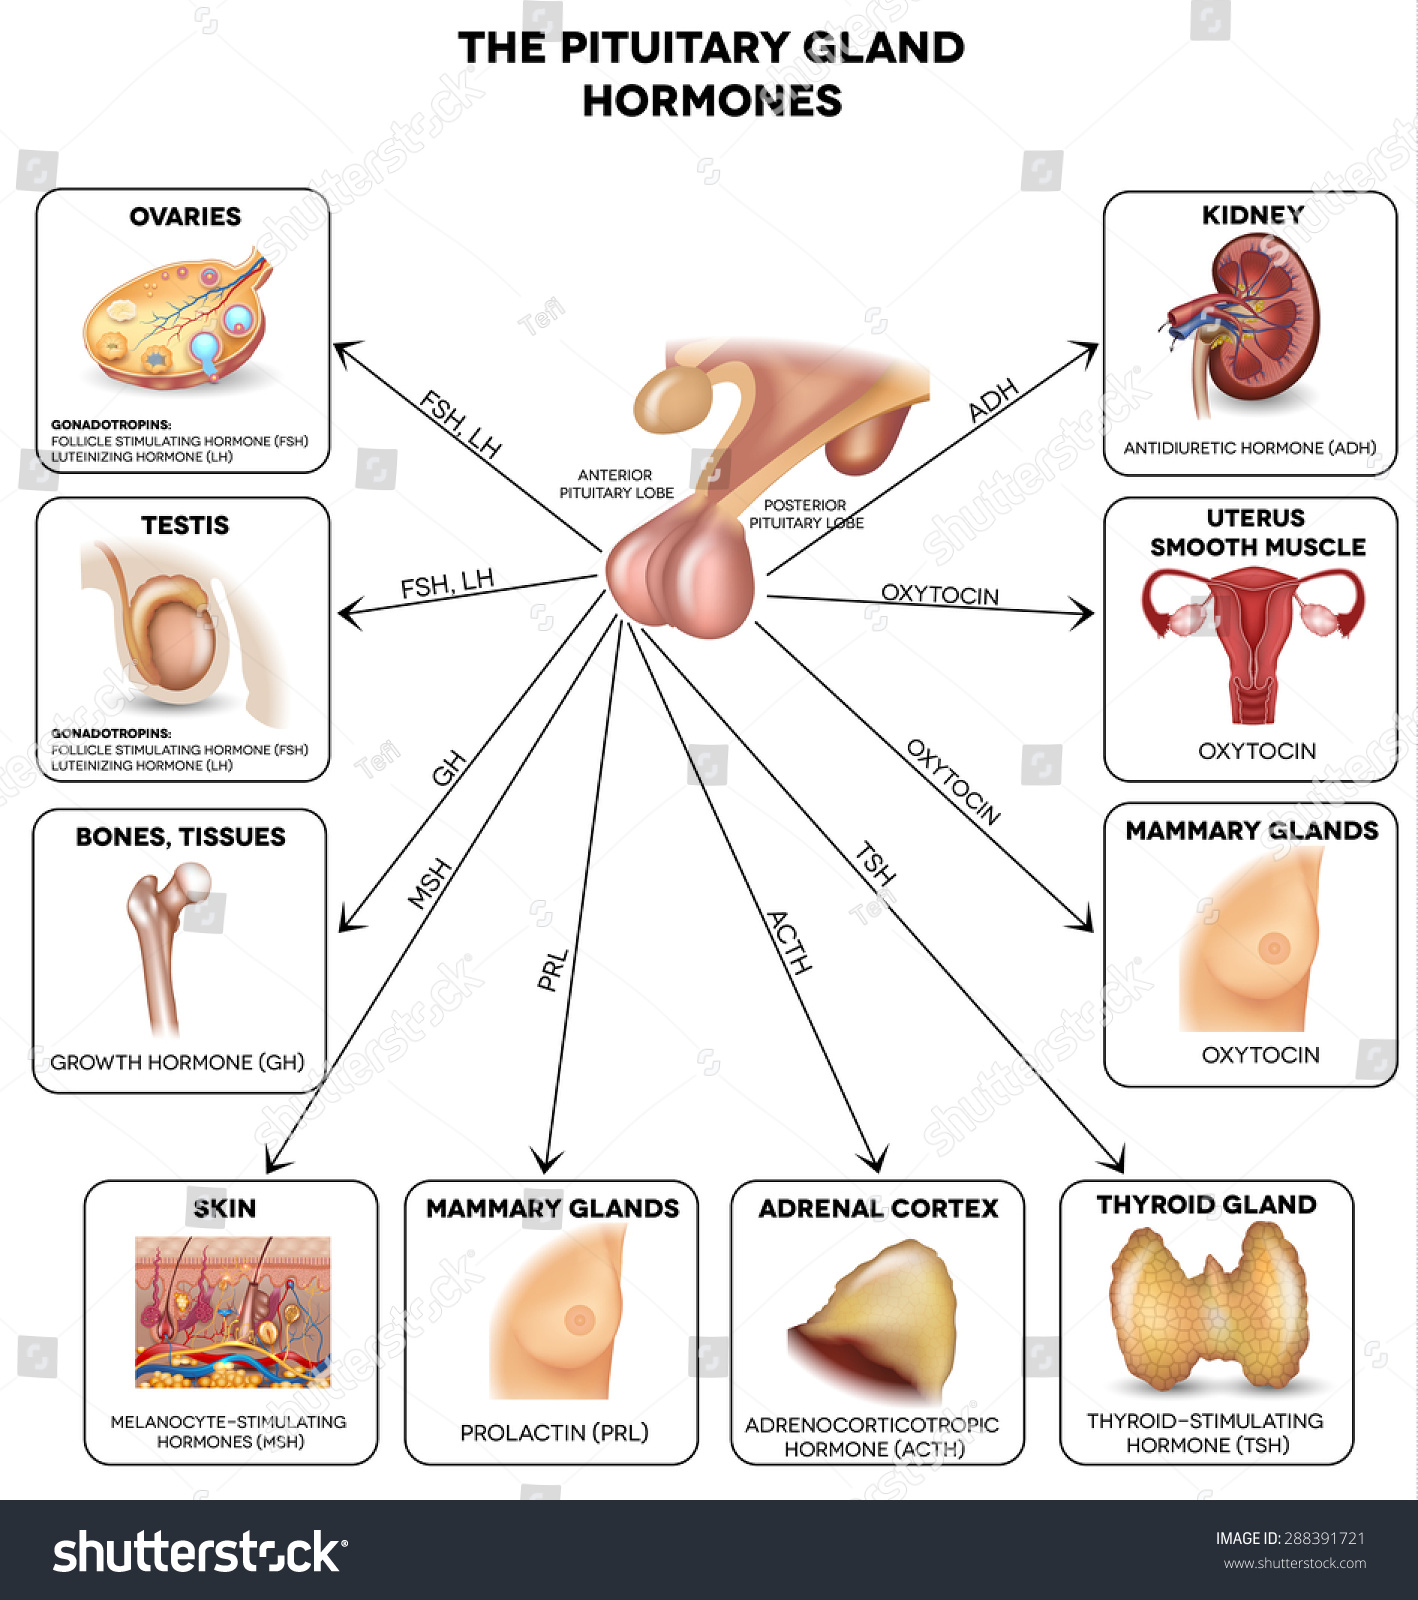 Pituitary Gland Secreted Hormones Influenced Organs Stock ...